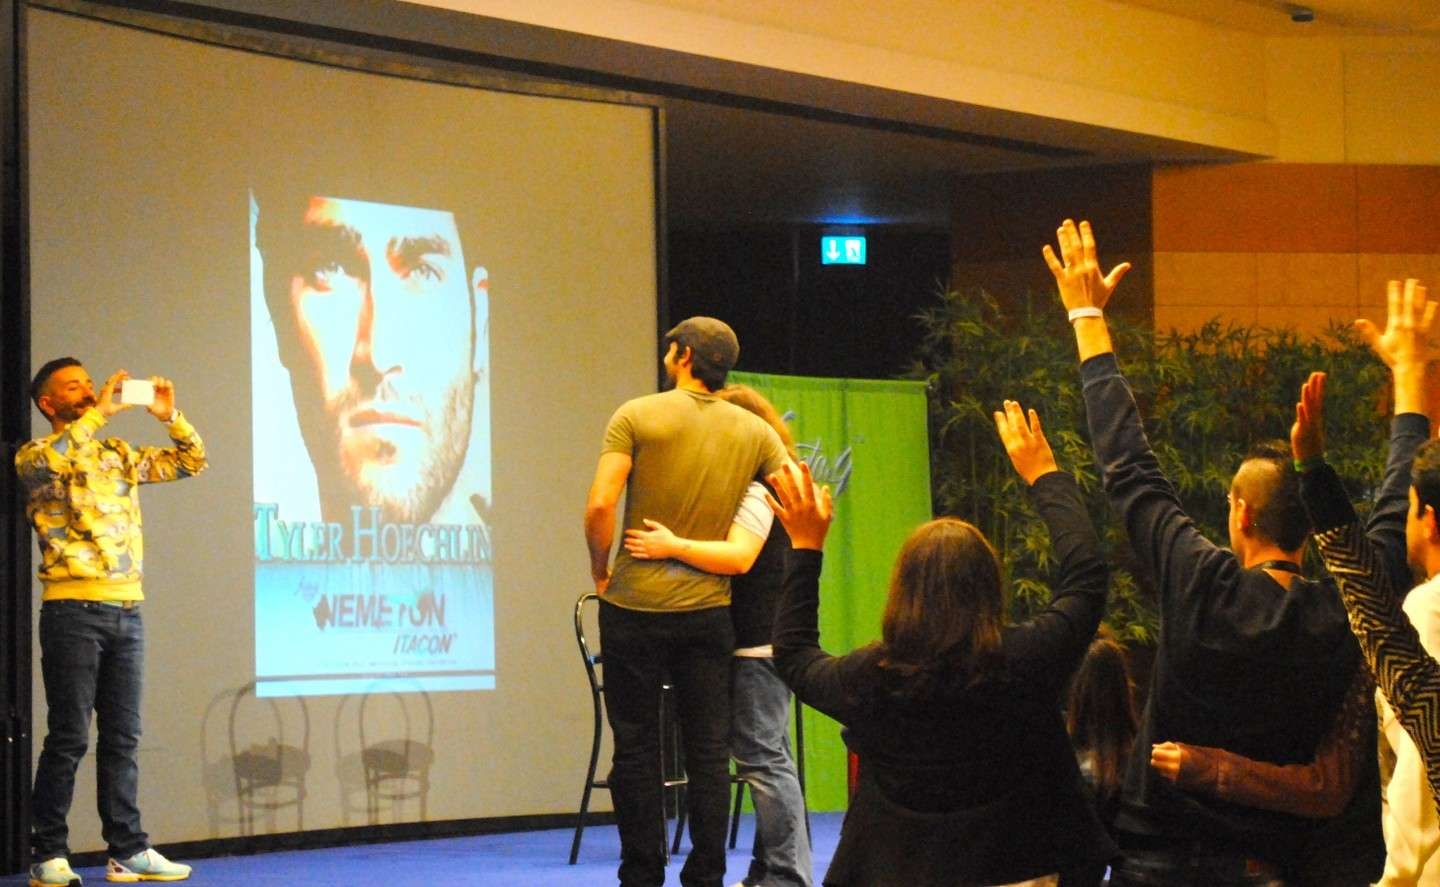 Scatto di Tyler Hoechlin alla Nemeton Itacon